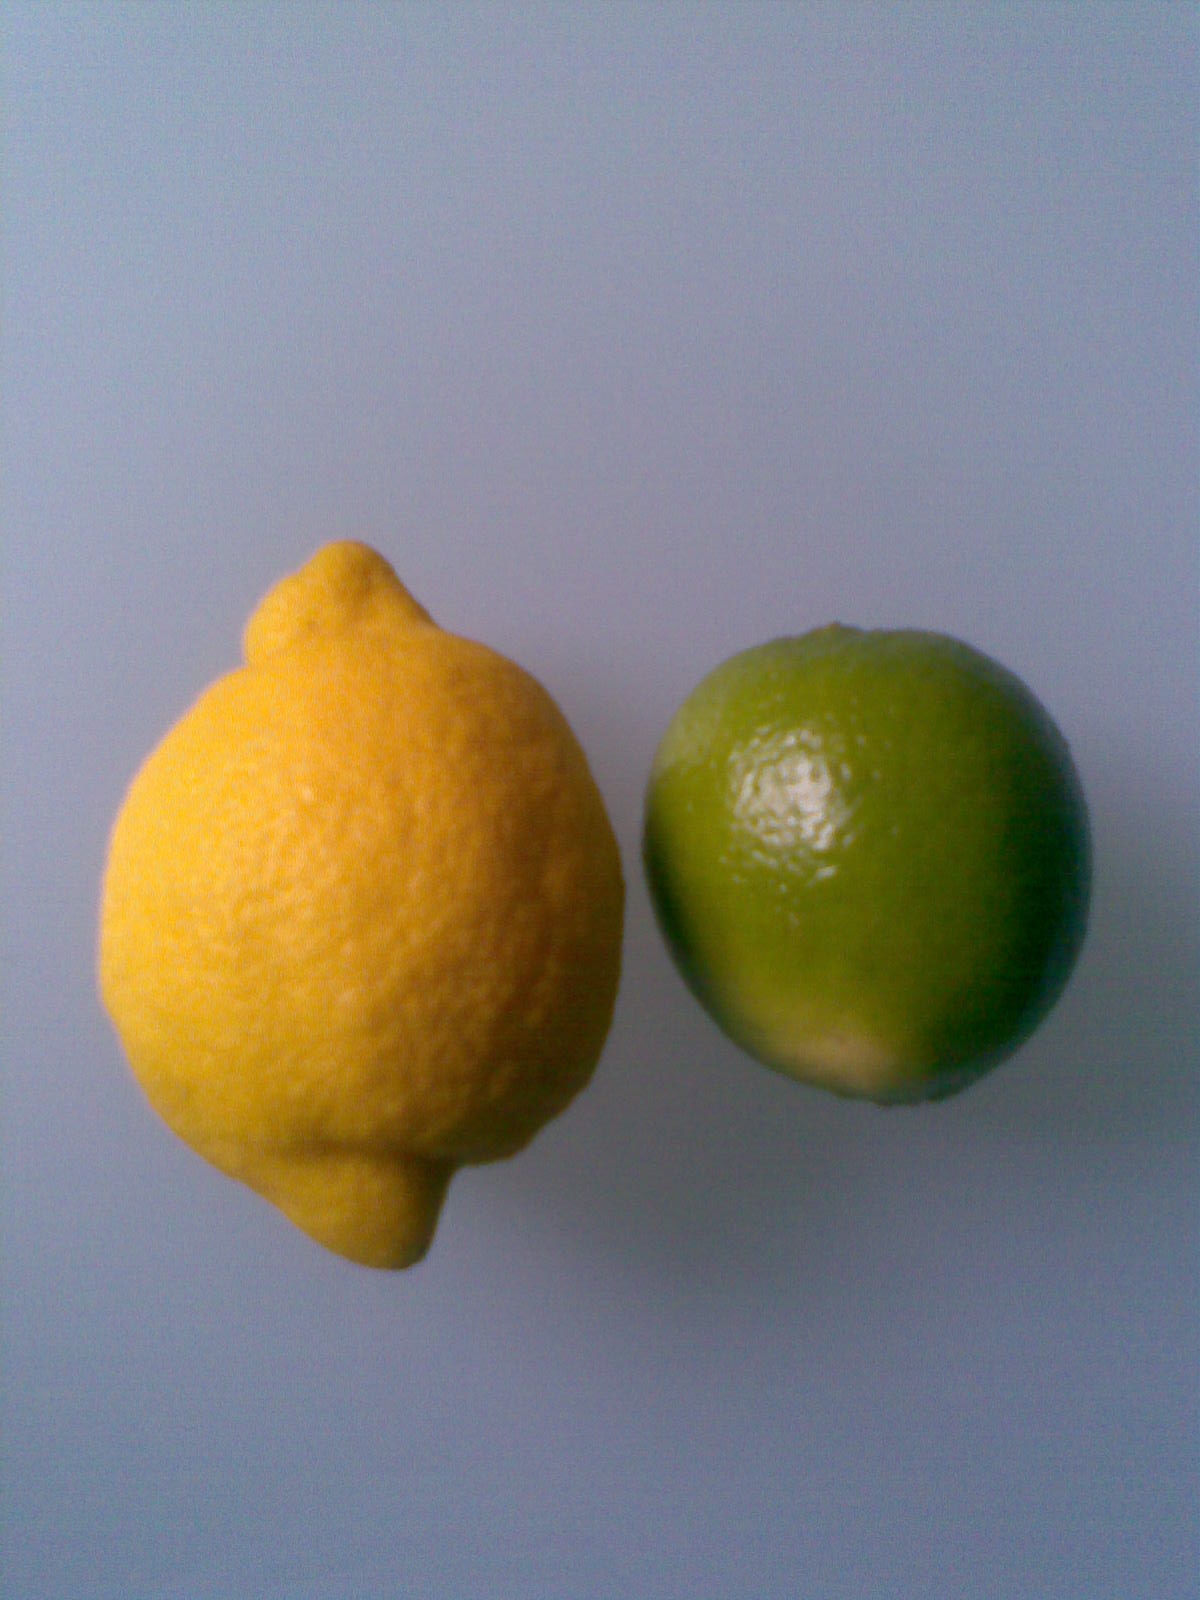 [Lemon+Lime]